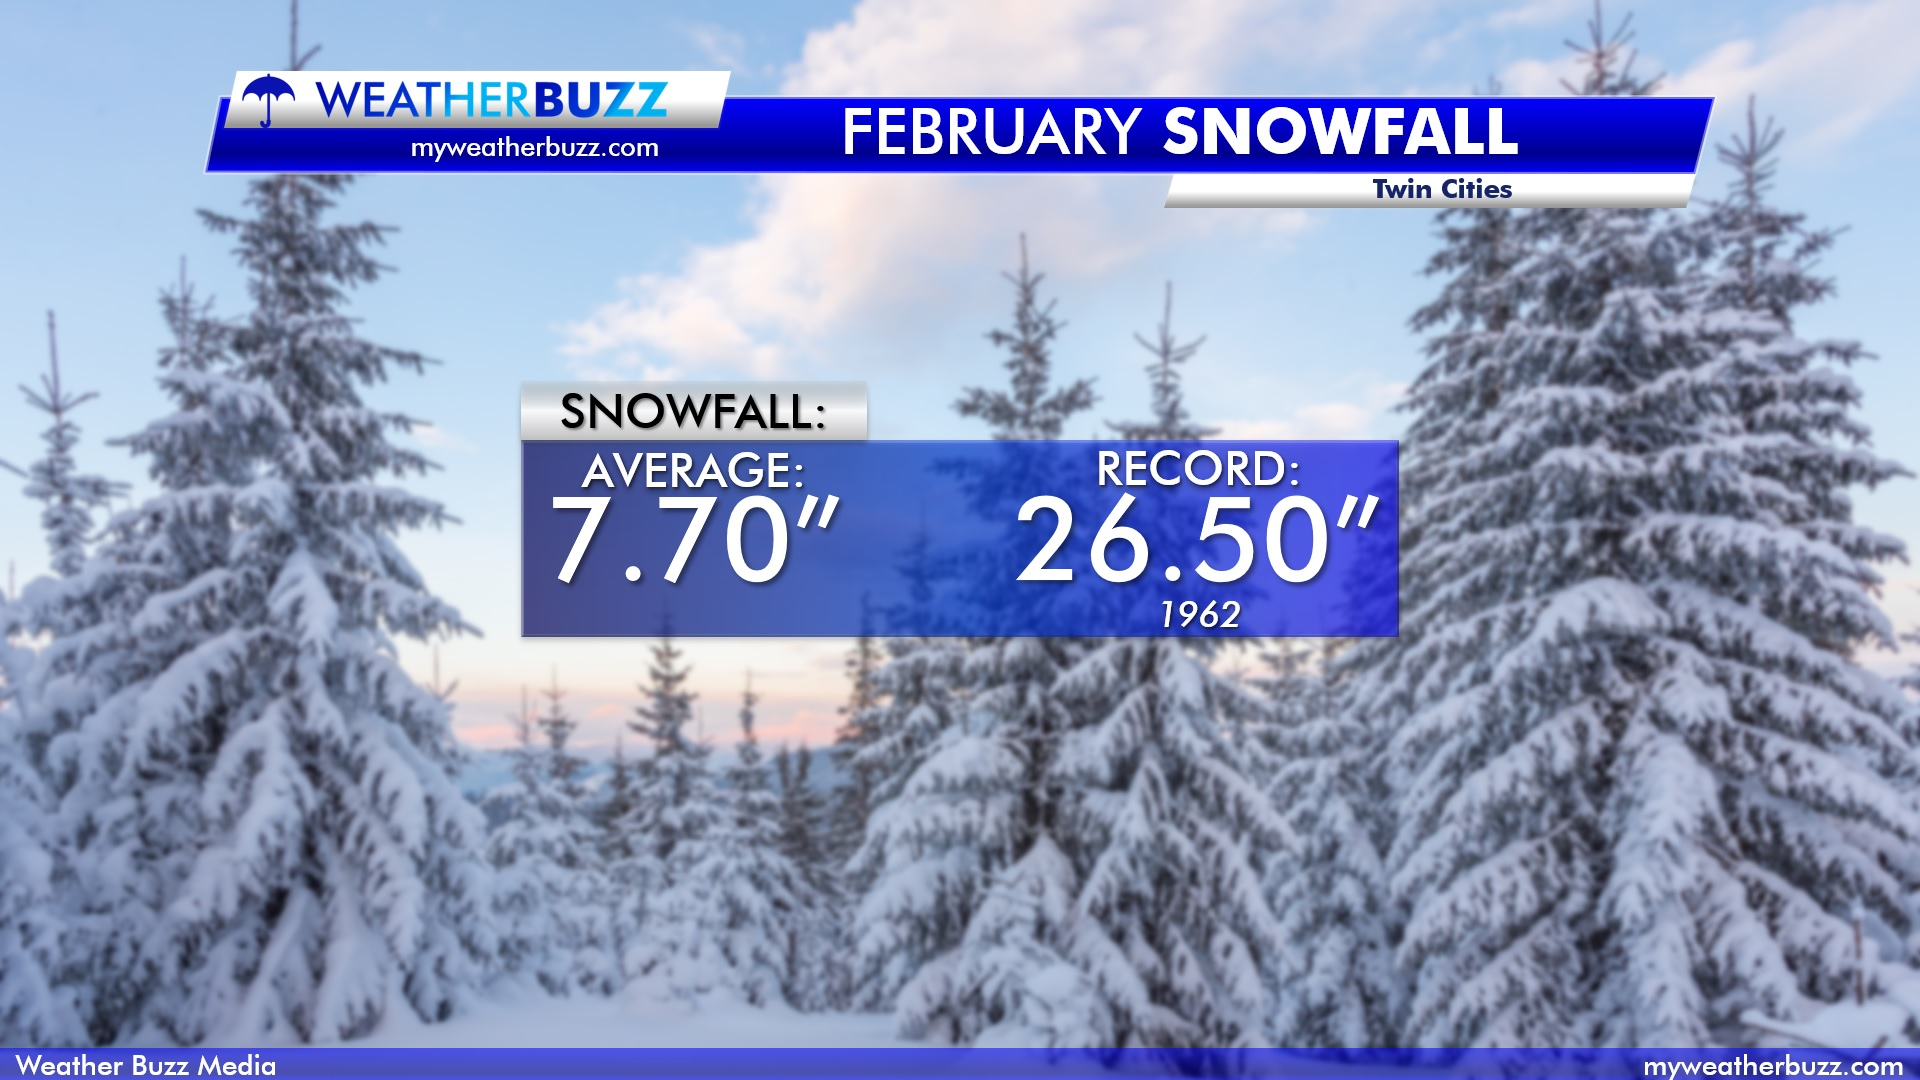 Snowfall Records and Averages for the Twin Cities in February